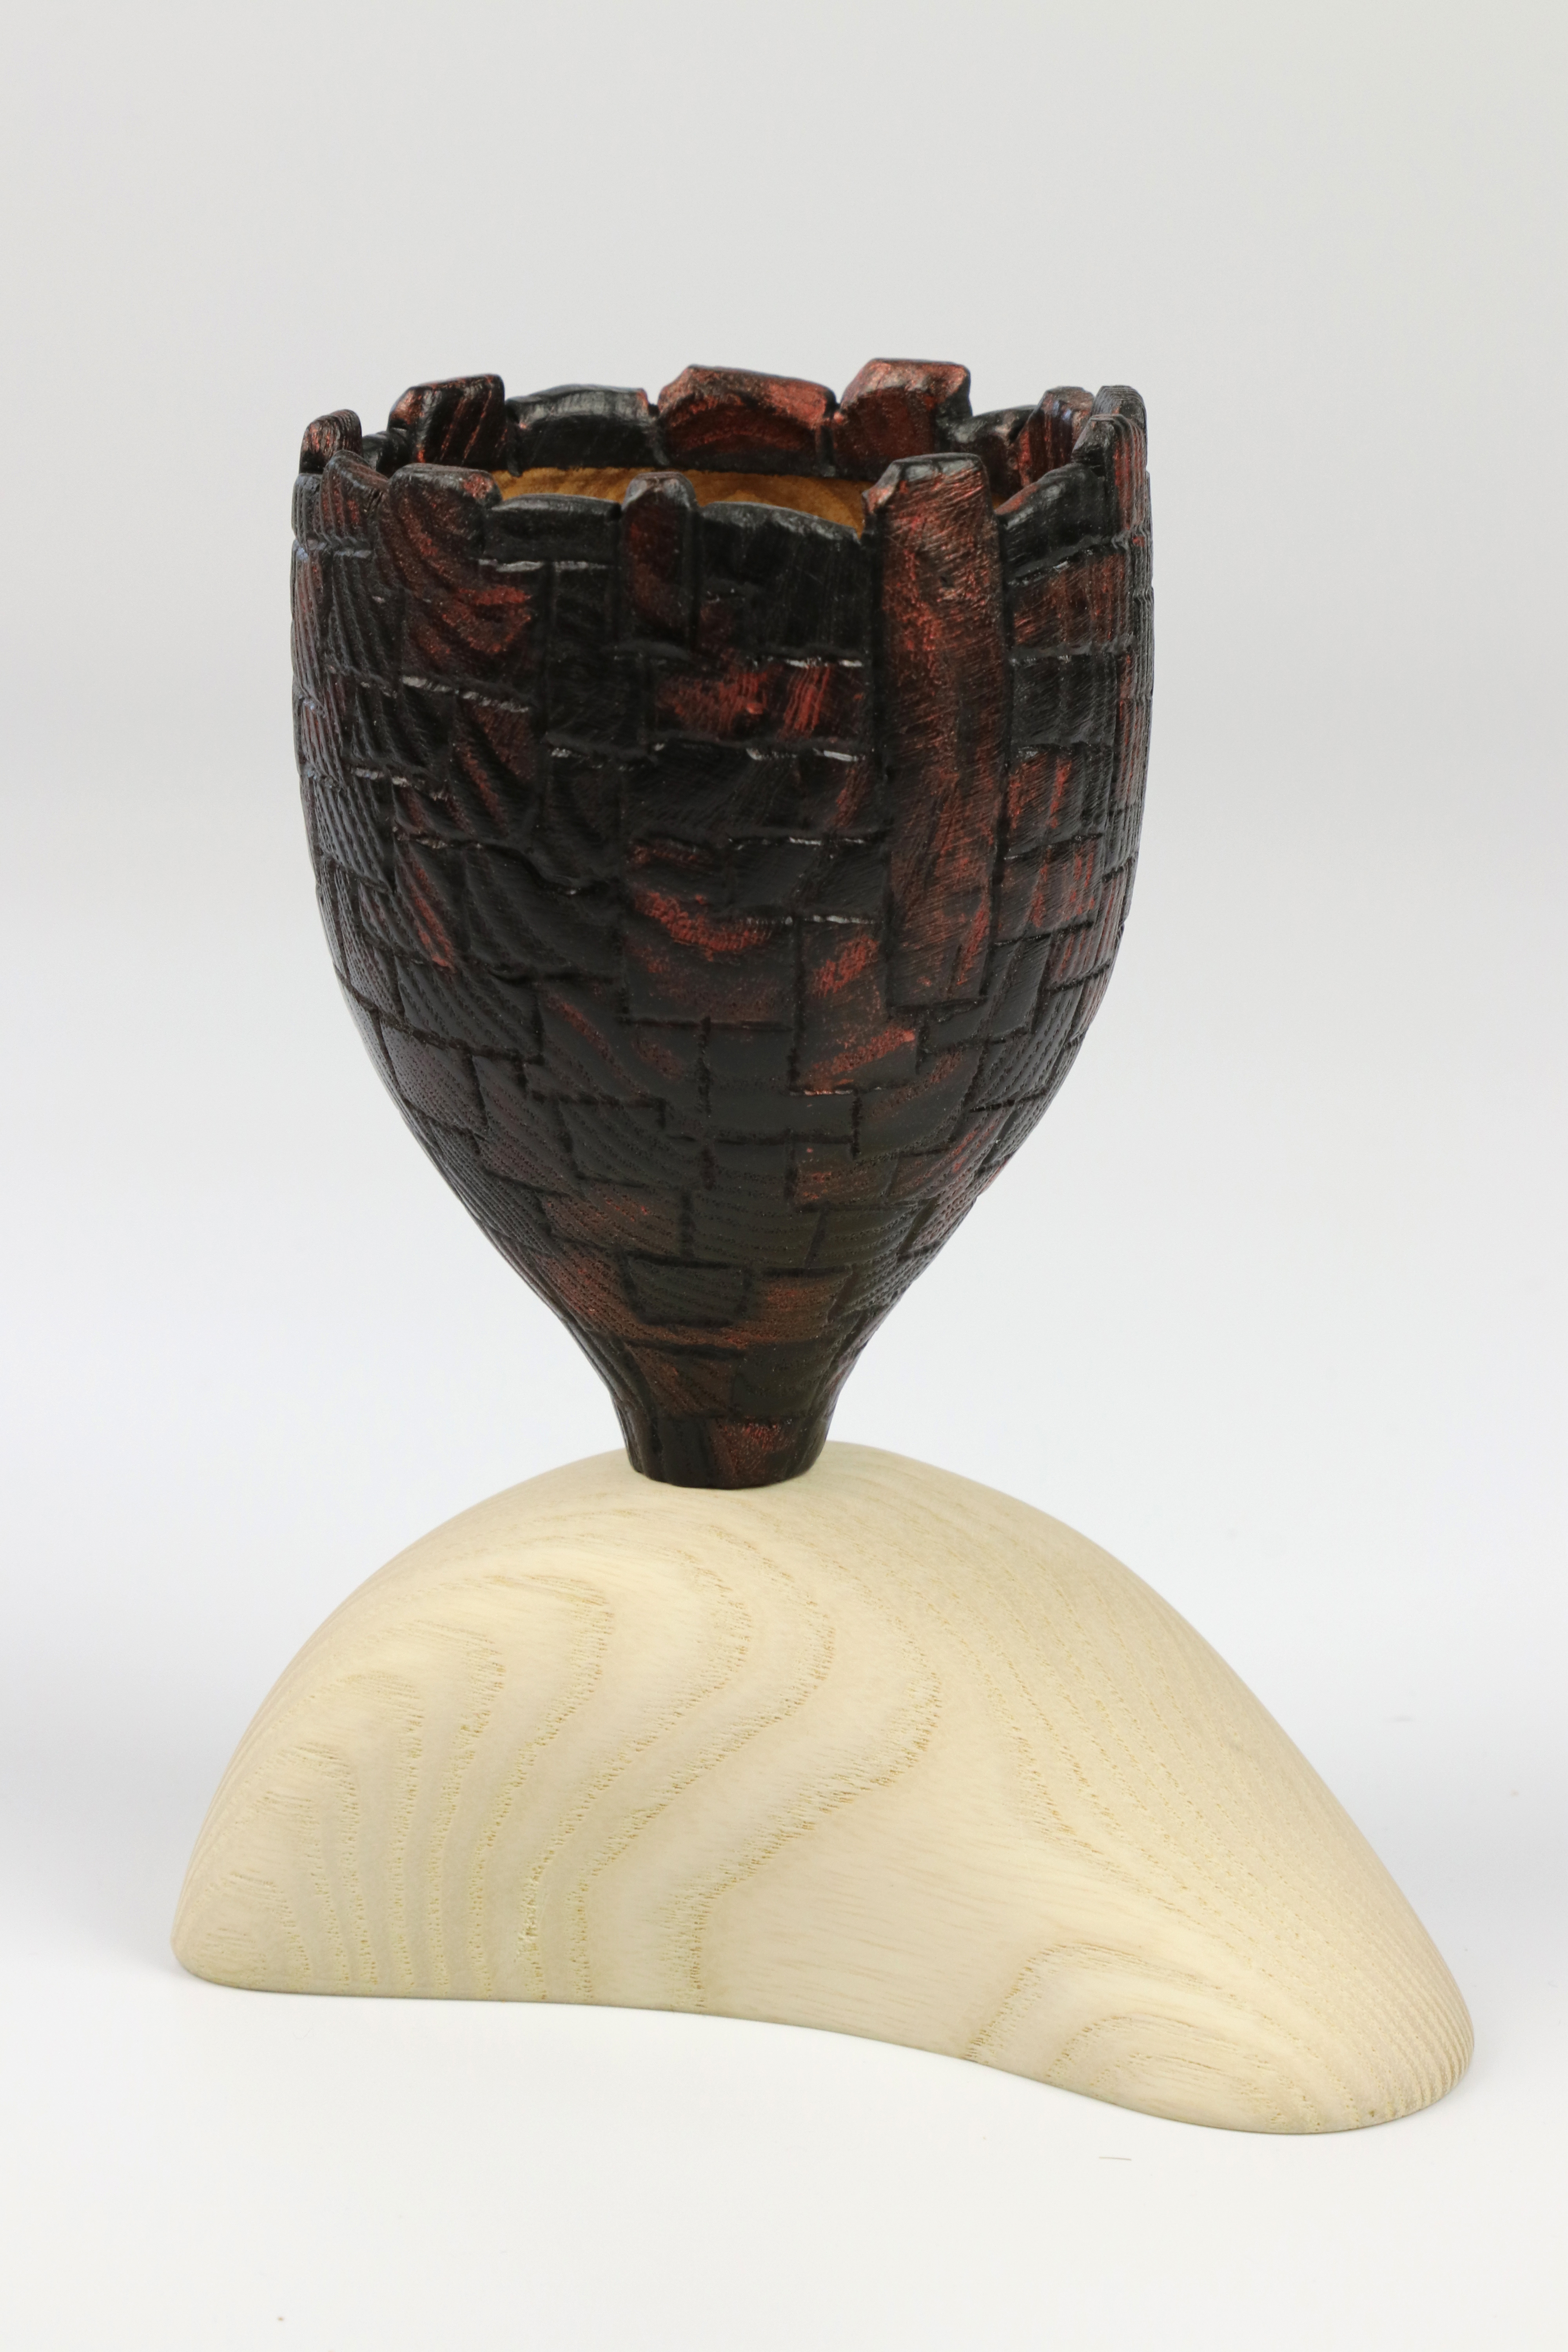 Lot 98 - Robert O'Connor (Ireland) carved and coloured ash vessel 13x11cm. Signed